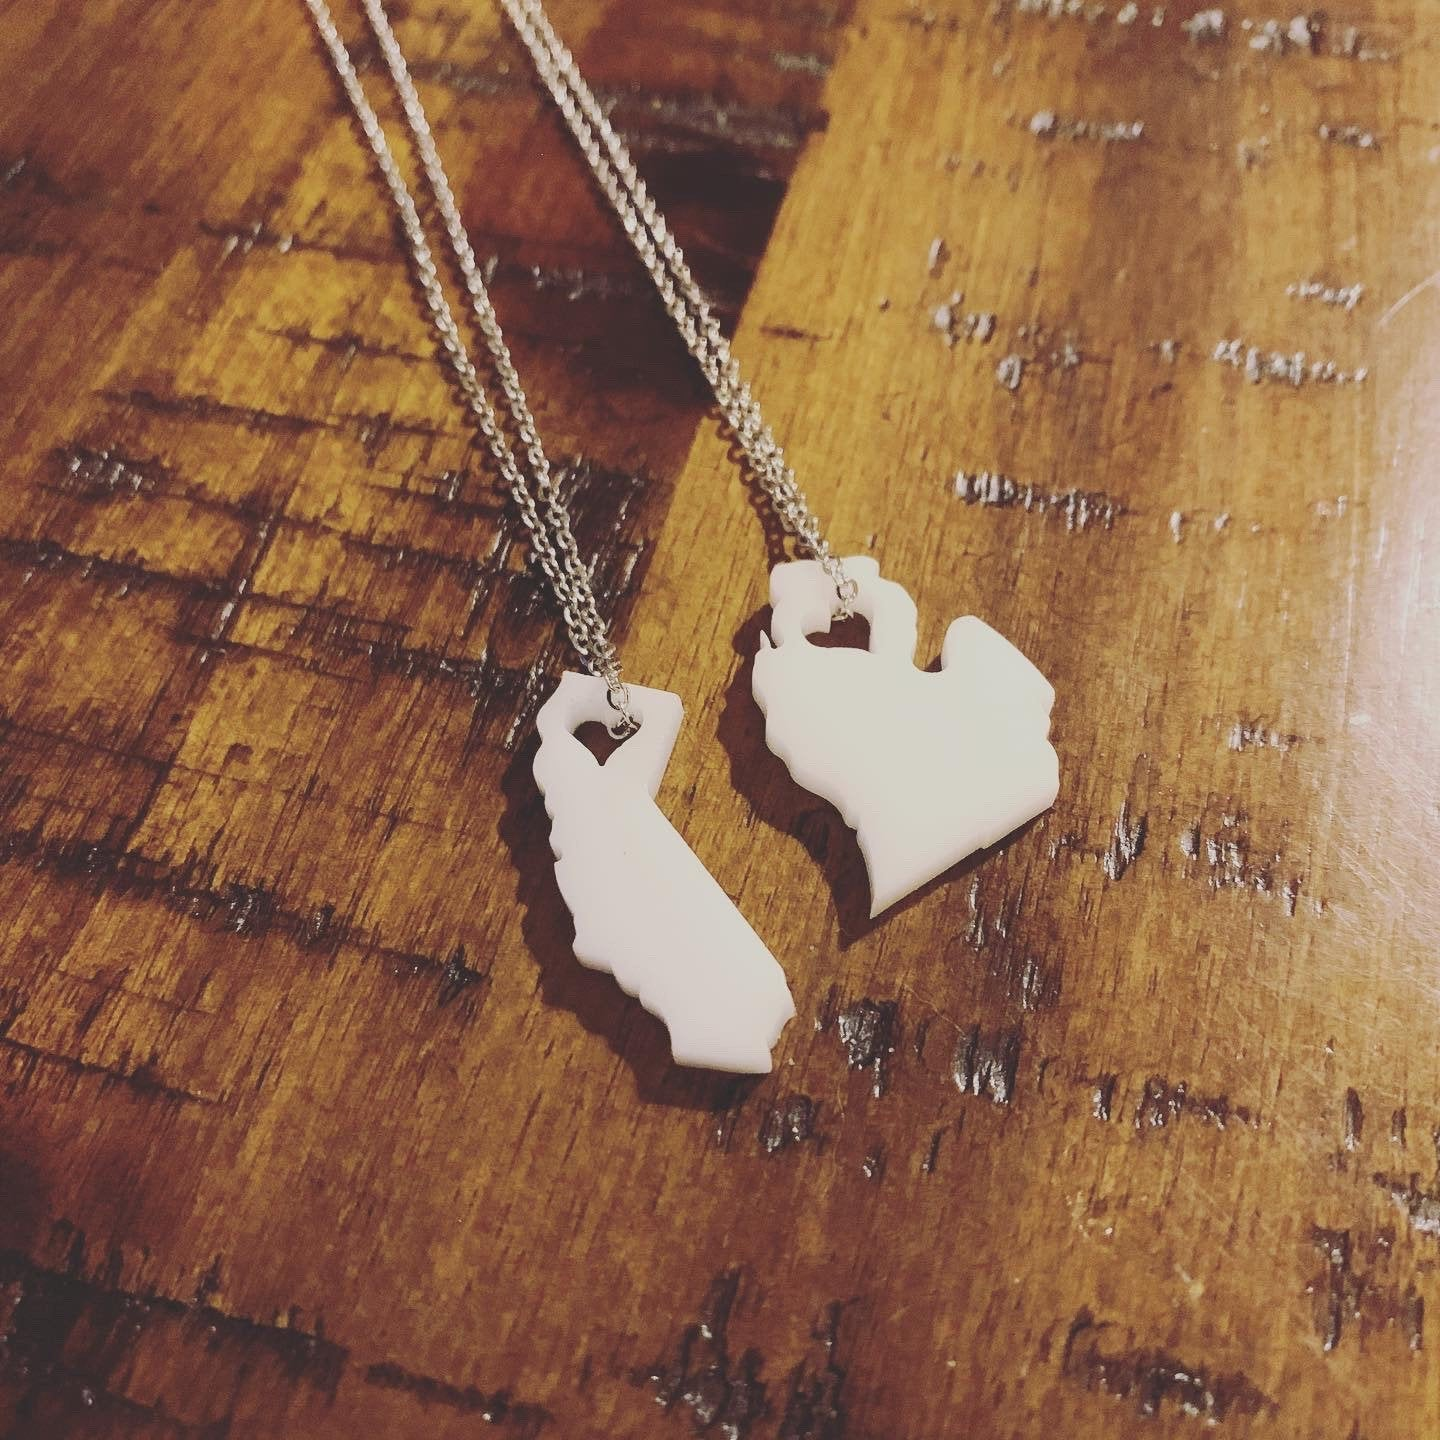 Home State Necklace | Home Necklace | Heart Home Necklace